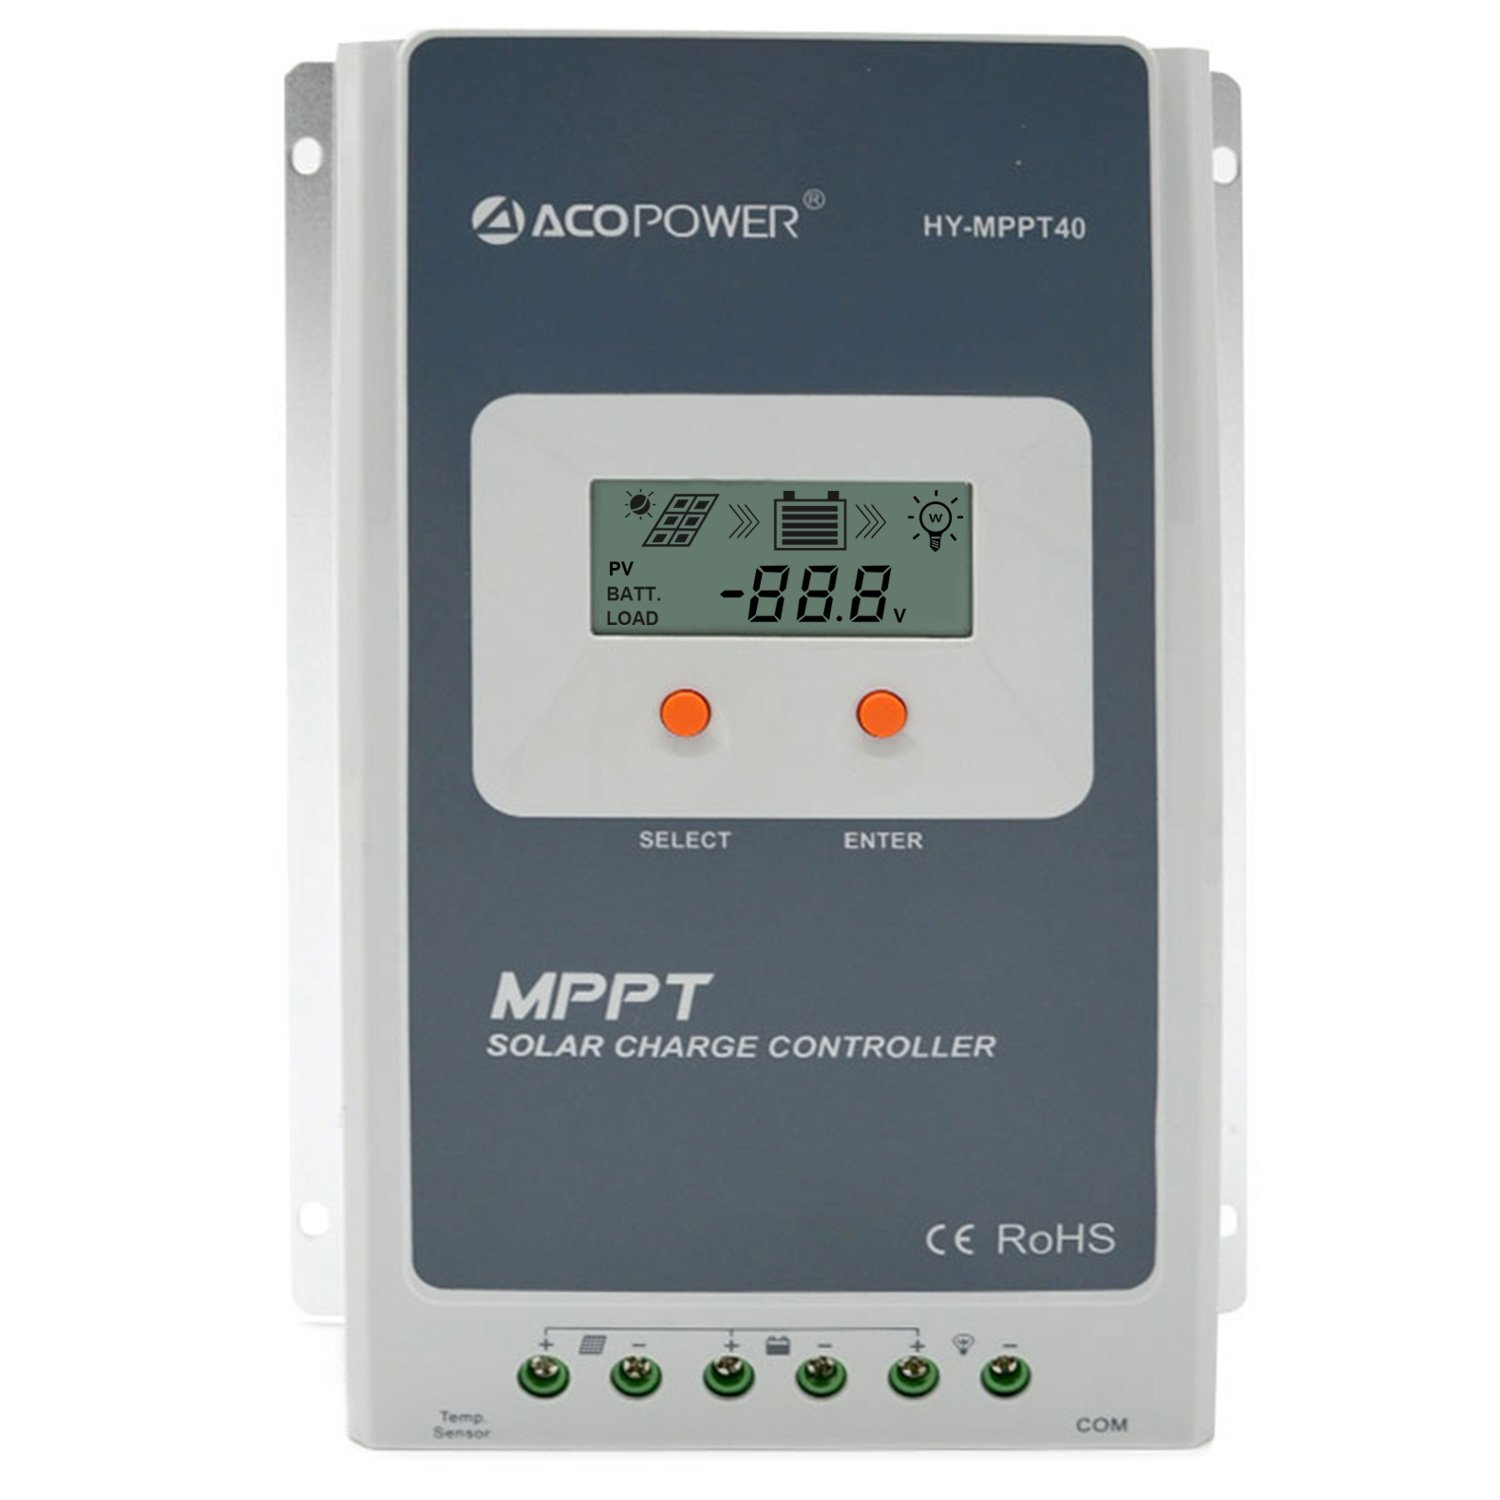 ACOPOWER 40A MPPT Solar Charge Controller 100V Input HY-MPPT40A with LCD Display